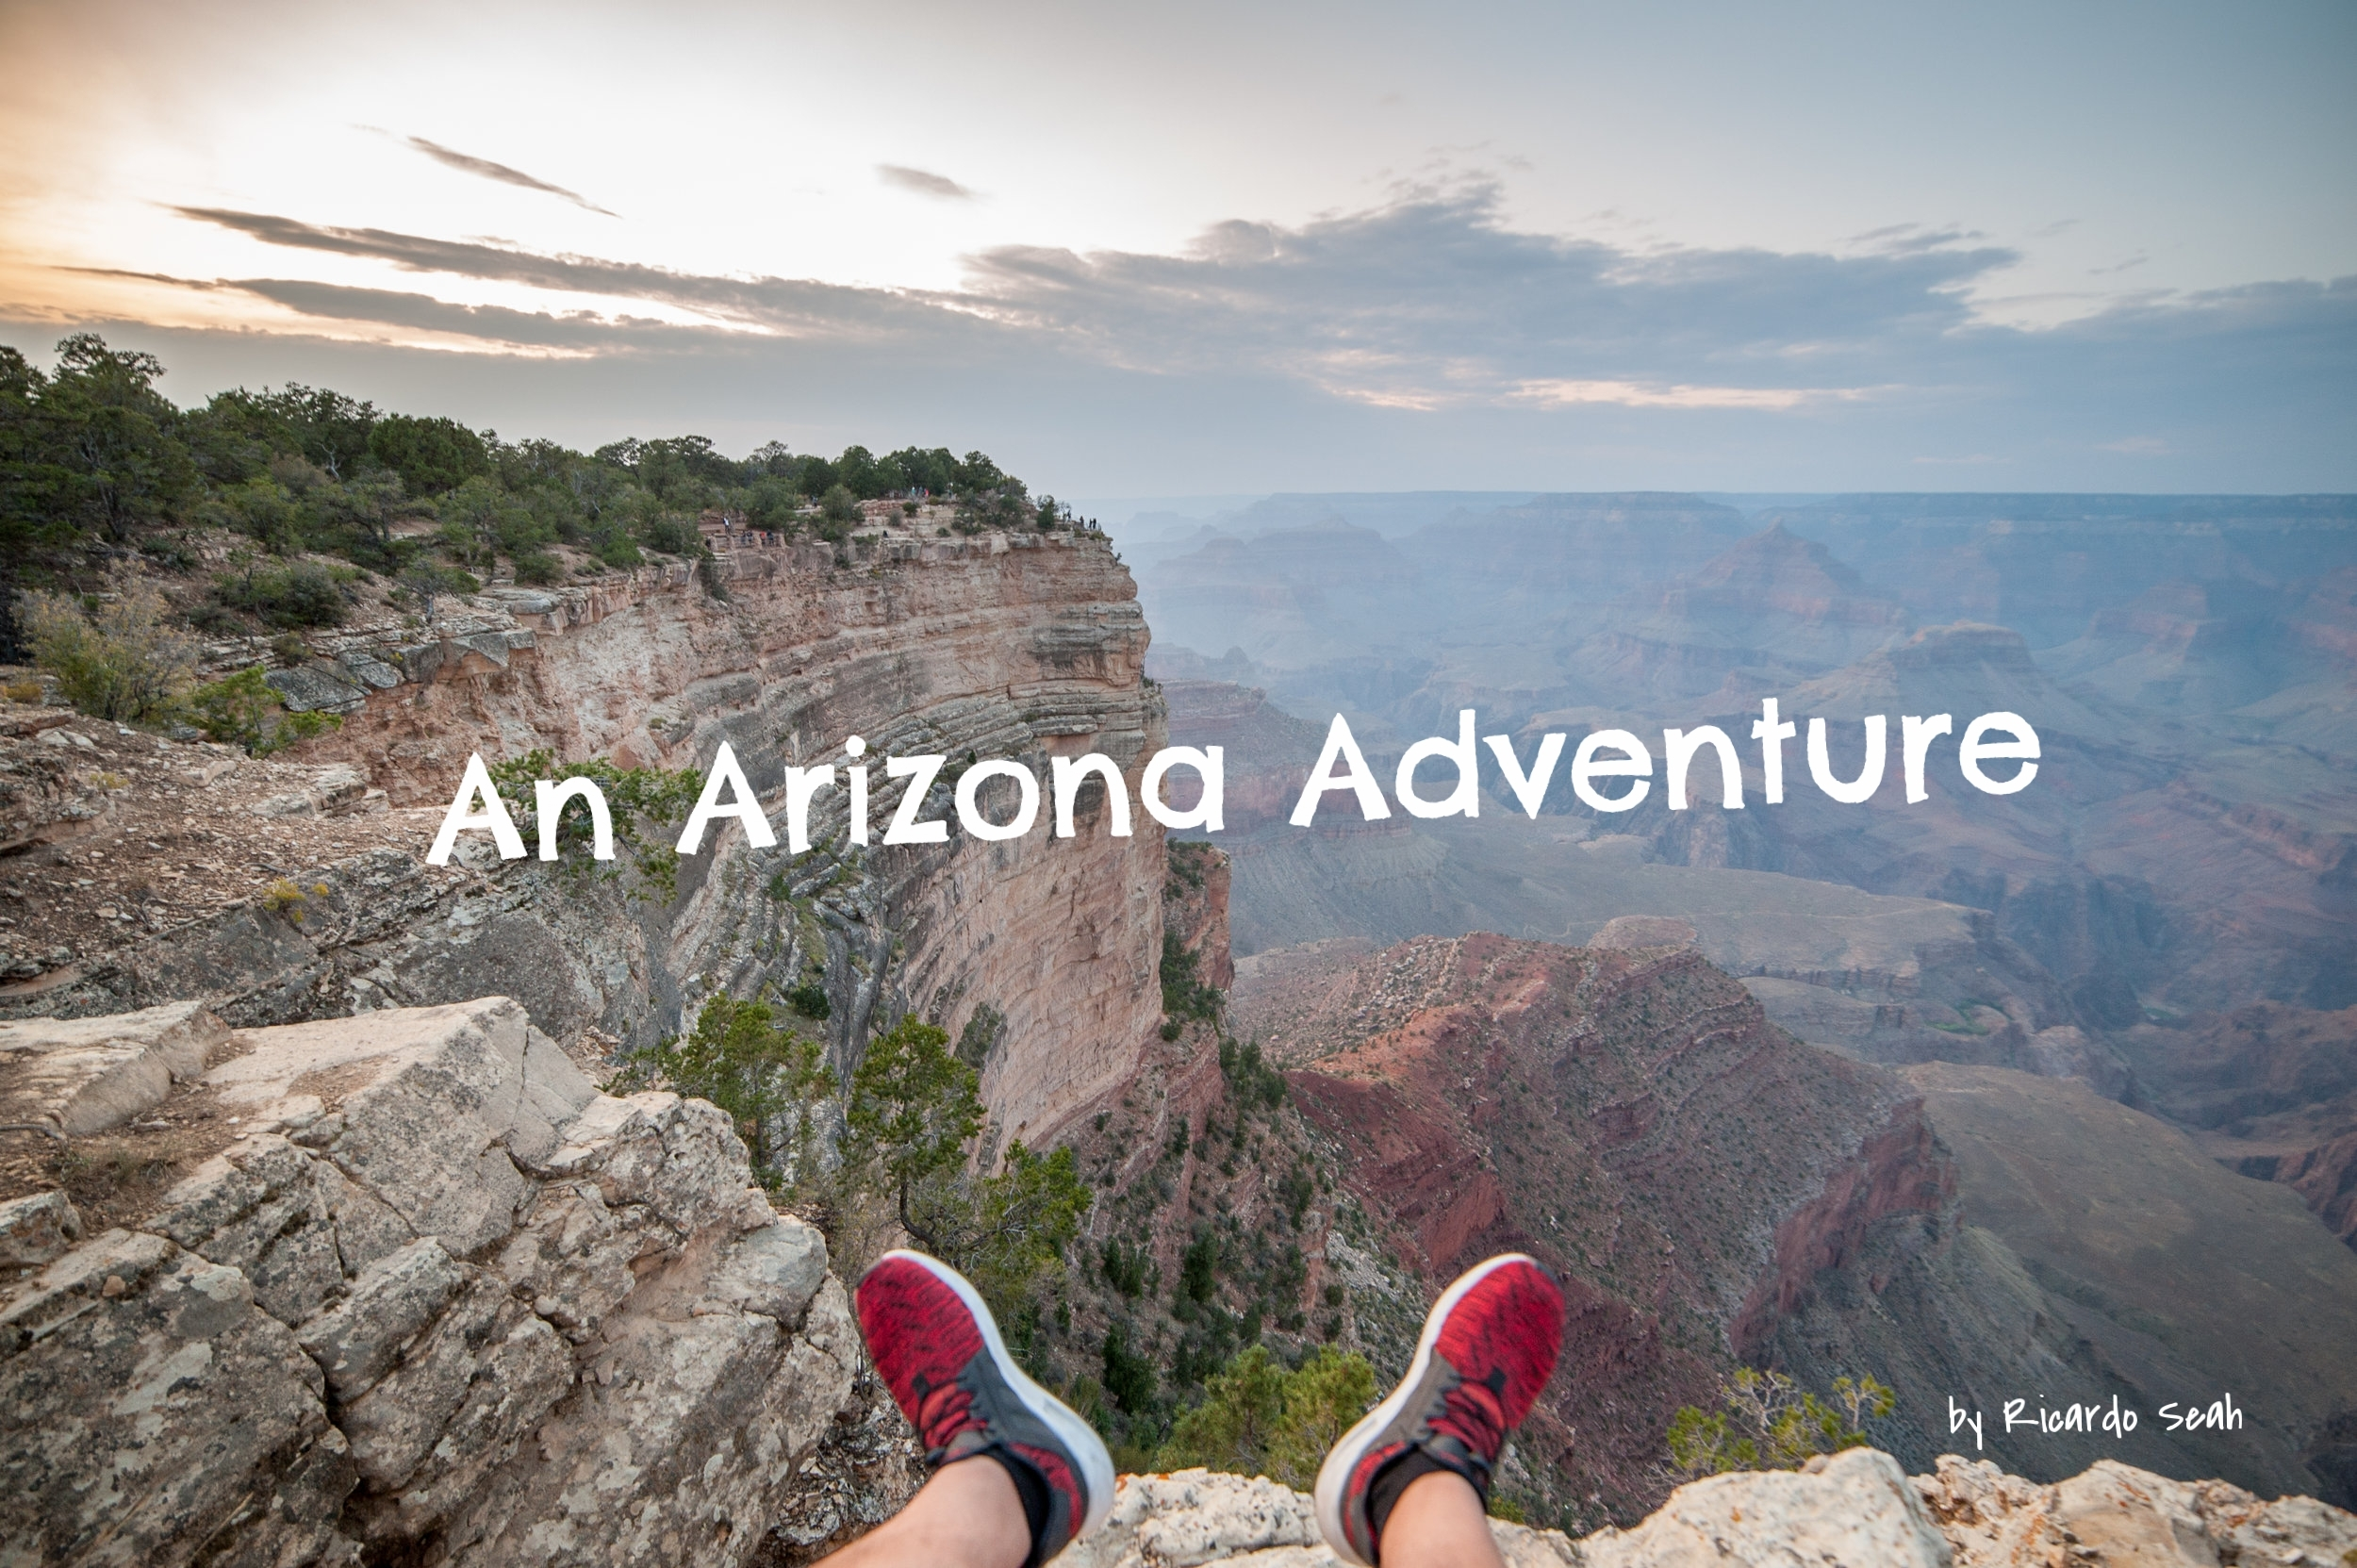 An Arizona Adventure